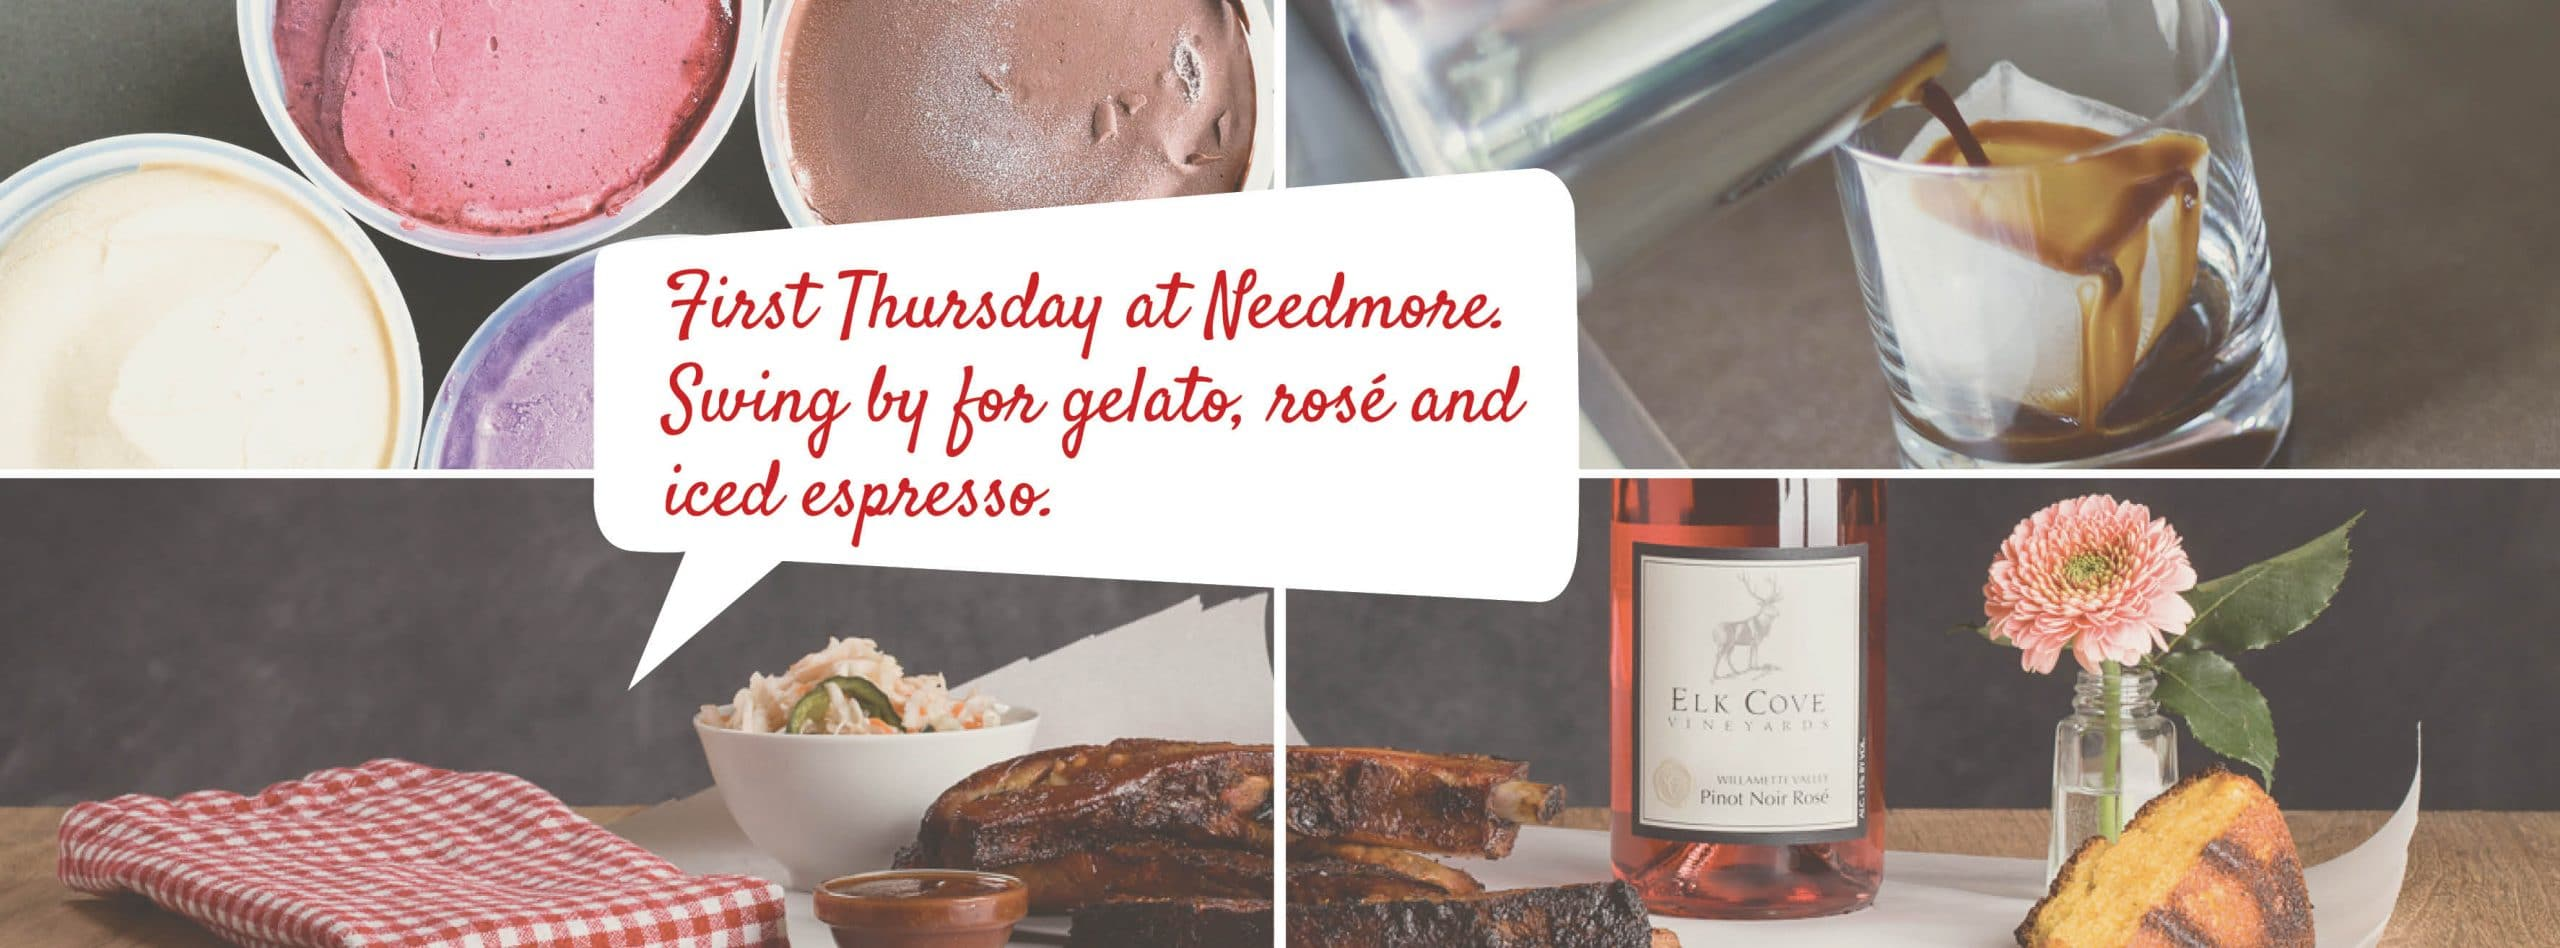 First Thursday at Needmore